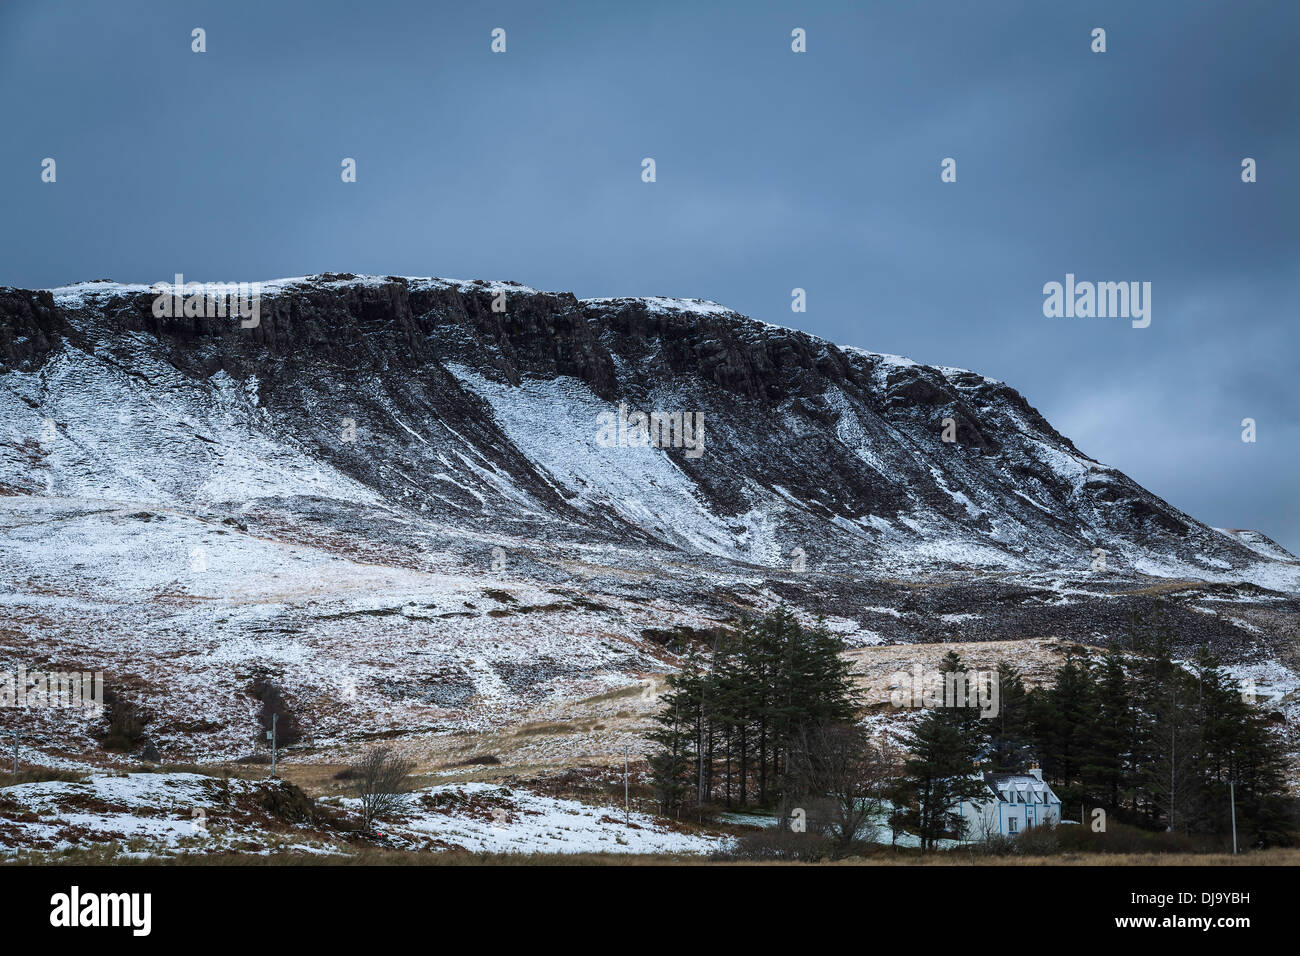 Snow dusted scree slopes of Ben Meabost near Elgol, Isle of Skye, Scotland - Stock Image